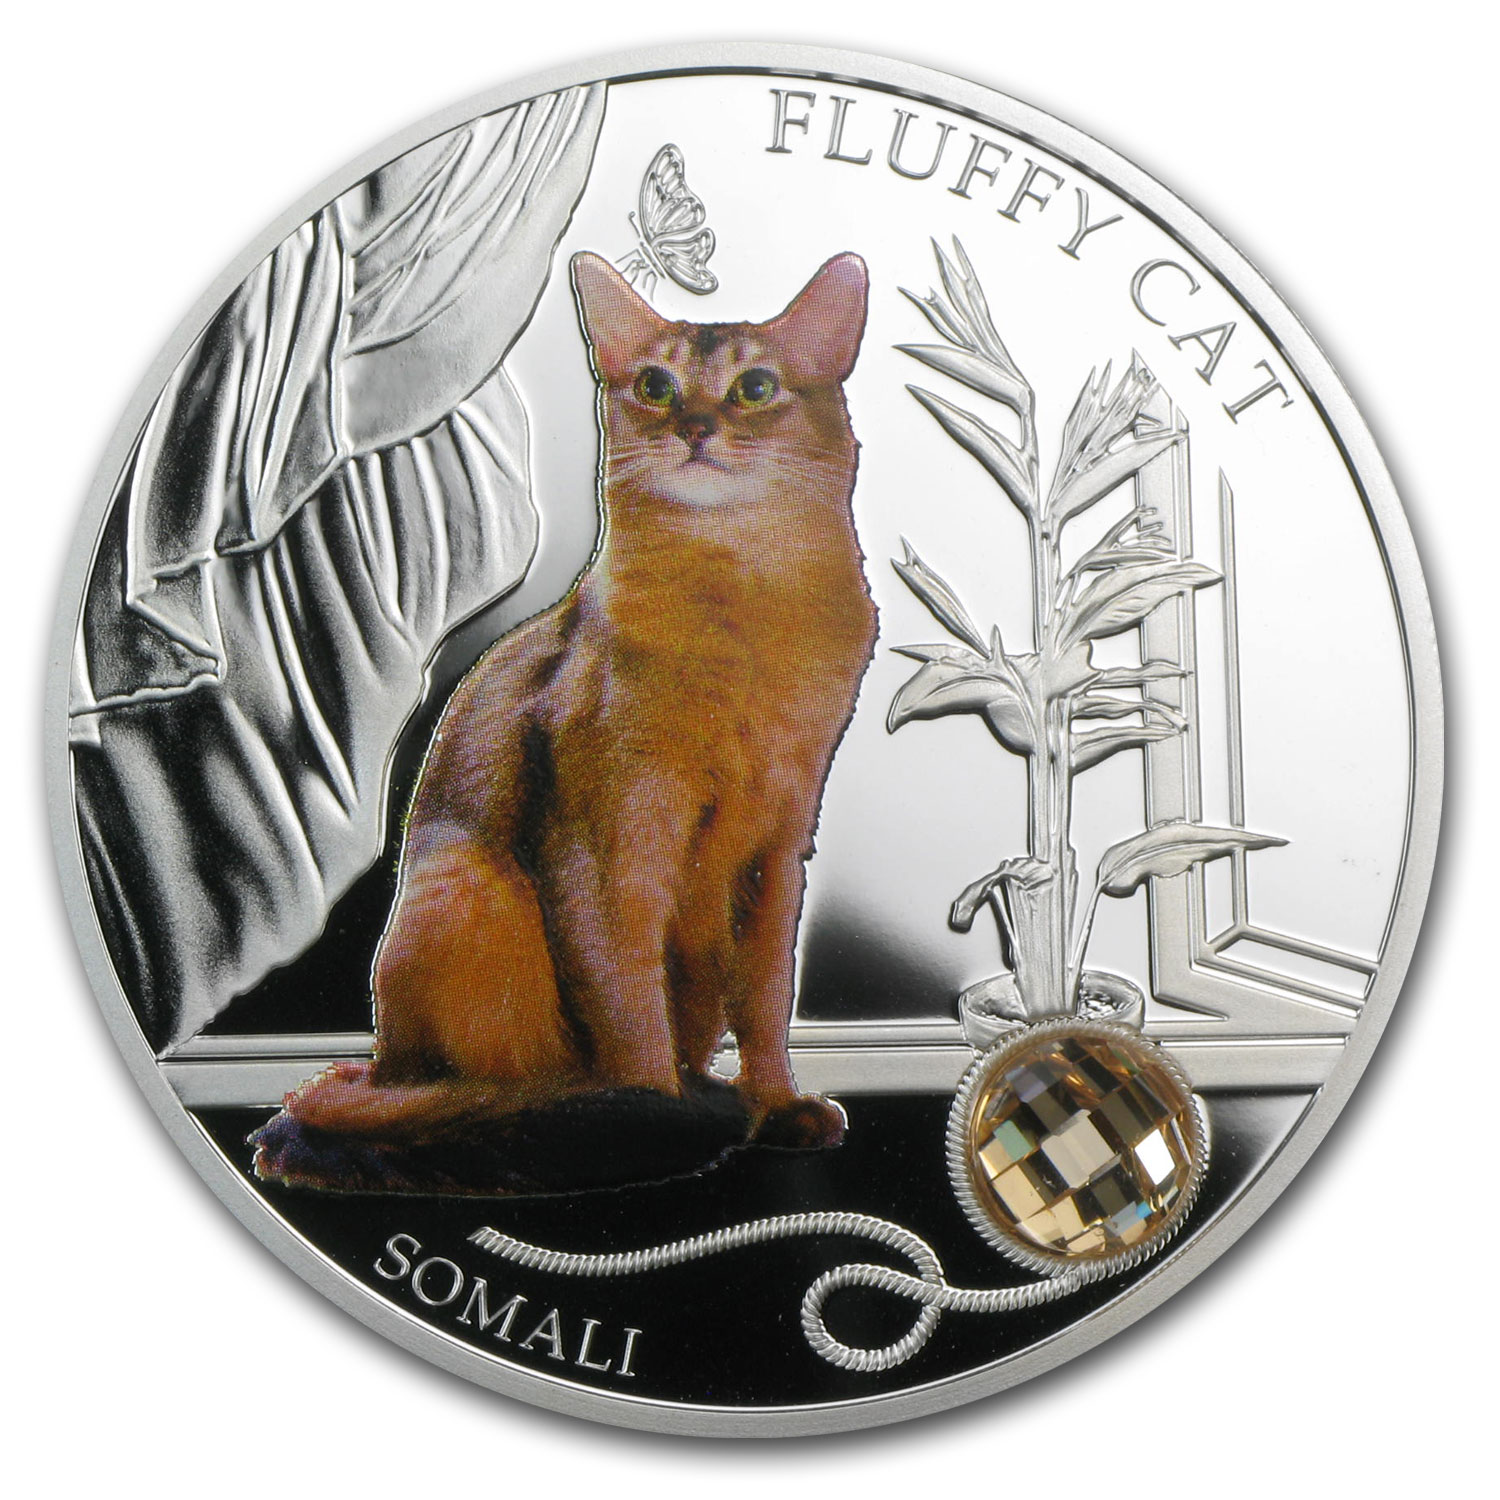 2013 Fiji Silver Dogs & Cats Series Fluffy Cat Somali